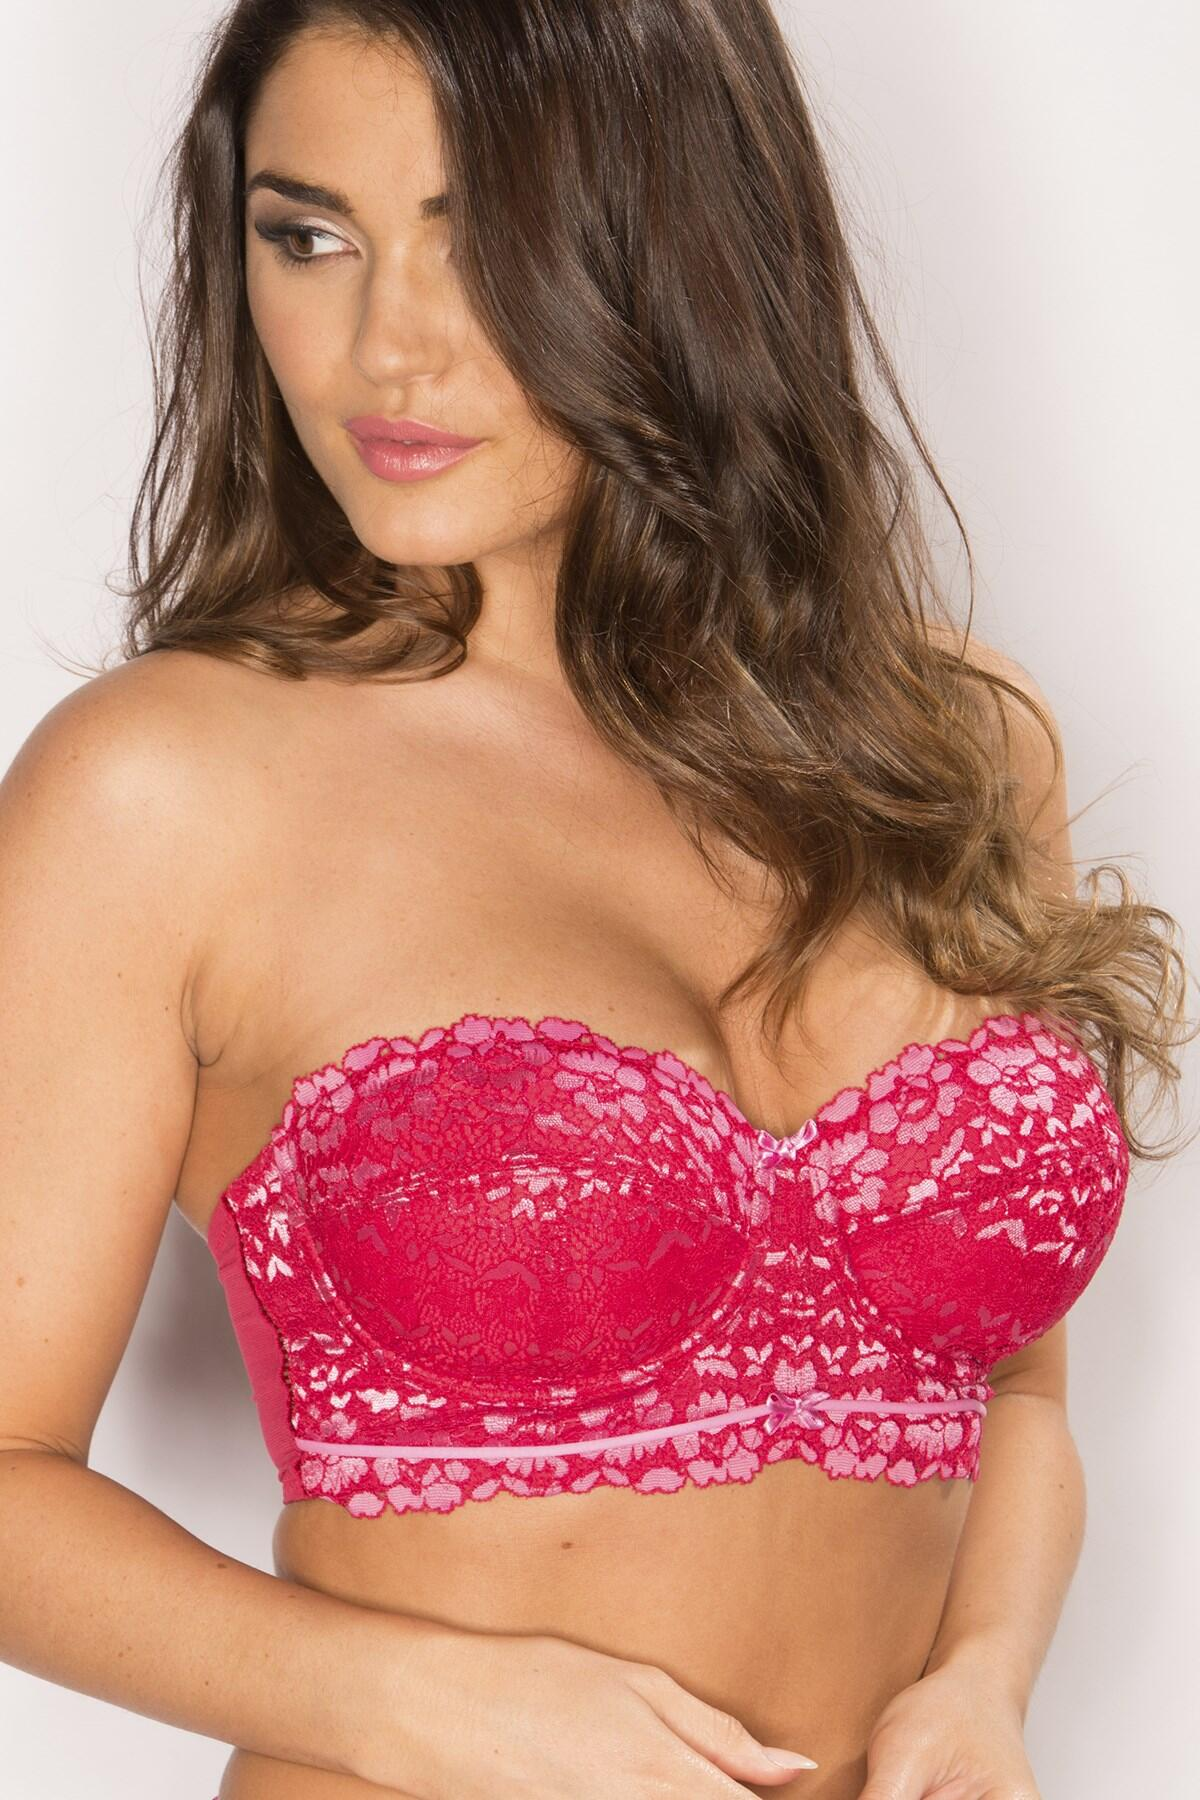 Fever Longline Strapless Bra - Cherry